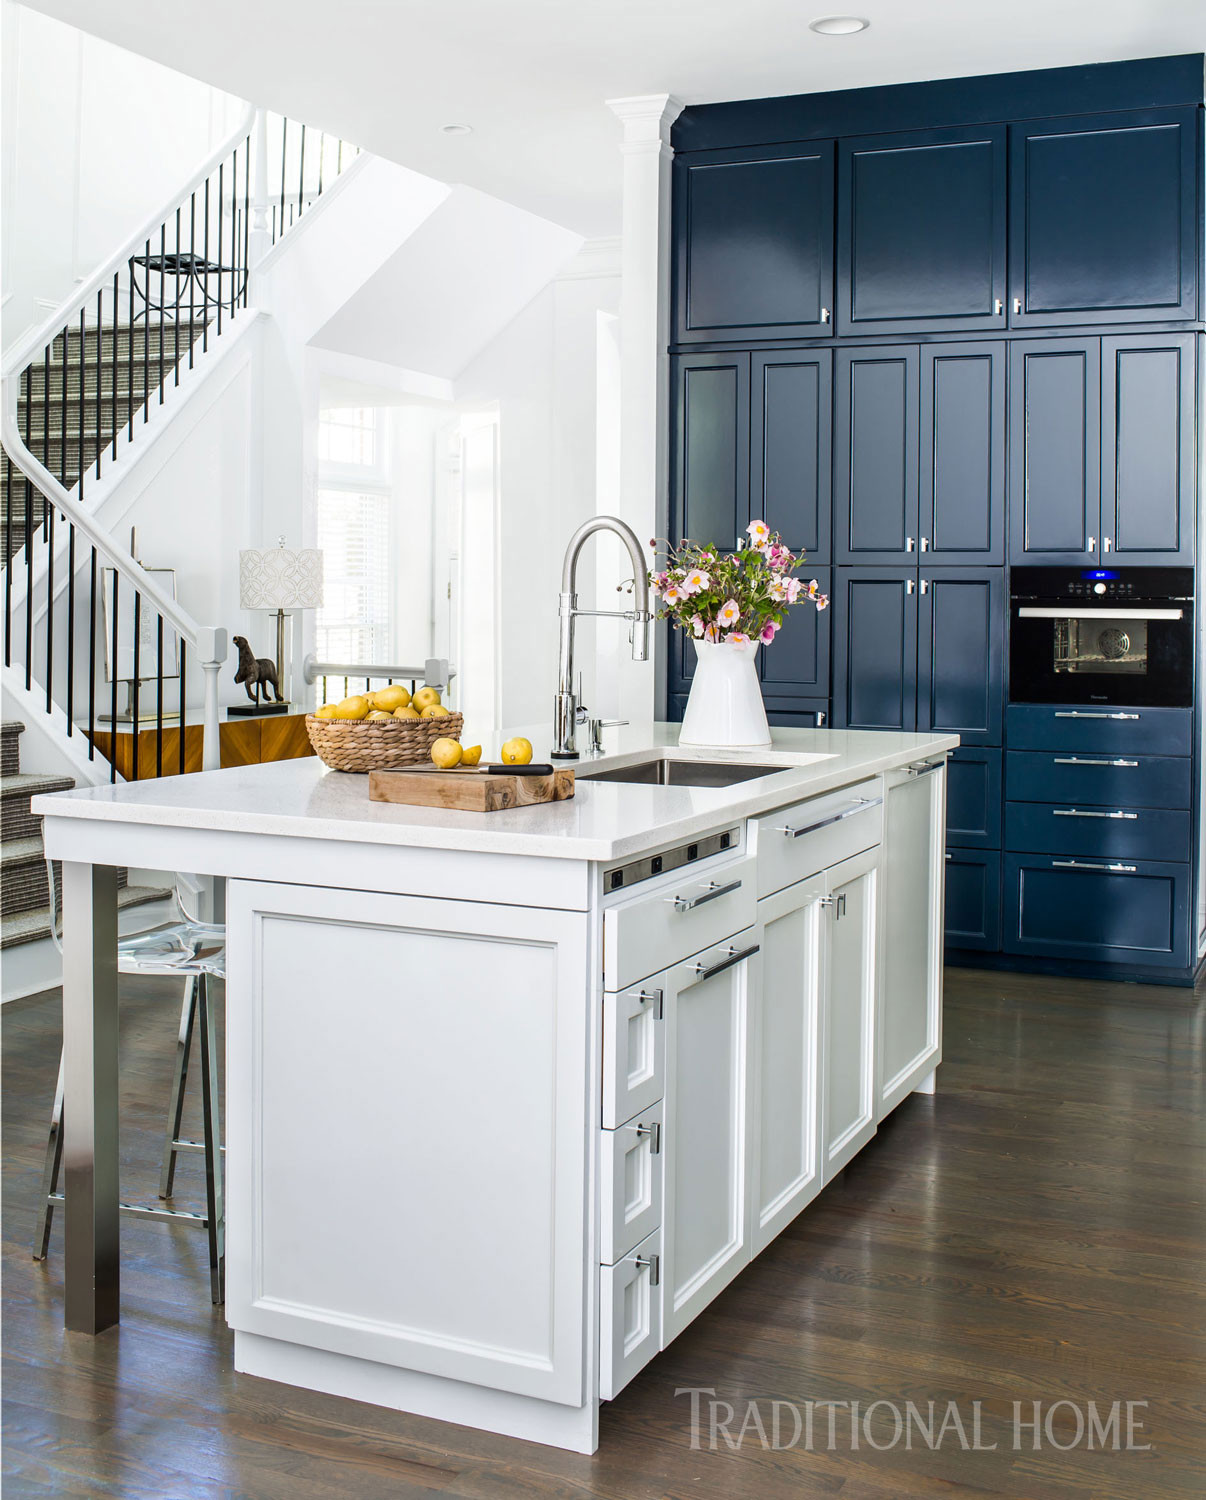 Best ideas about Blue And White Kitchen Decor . Save or Pin Blue and White Kitchen Decor Inspiration 40 Ideas Now.